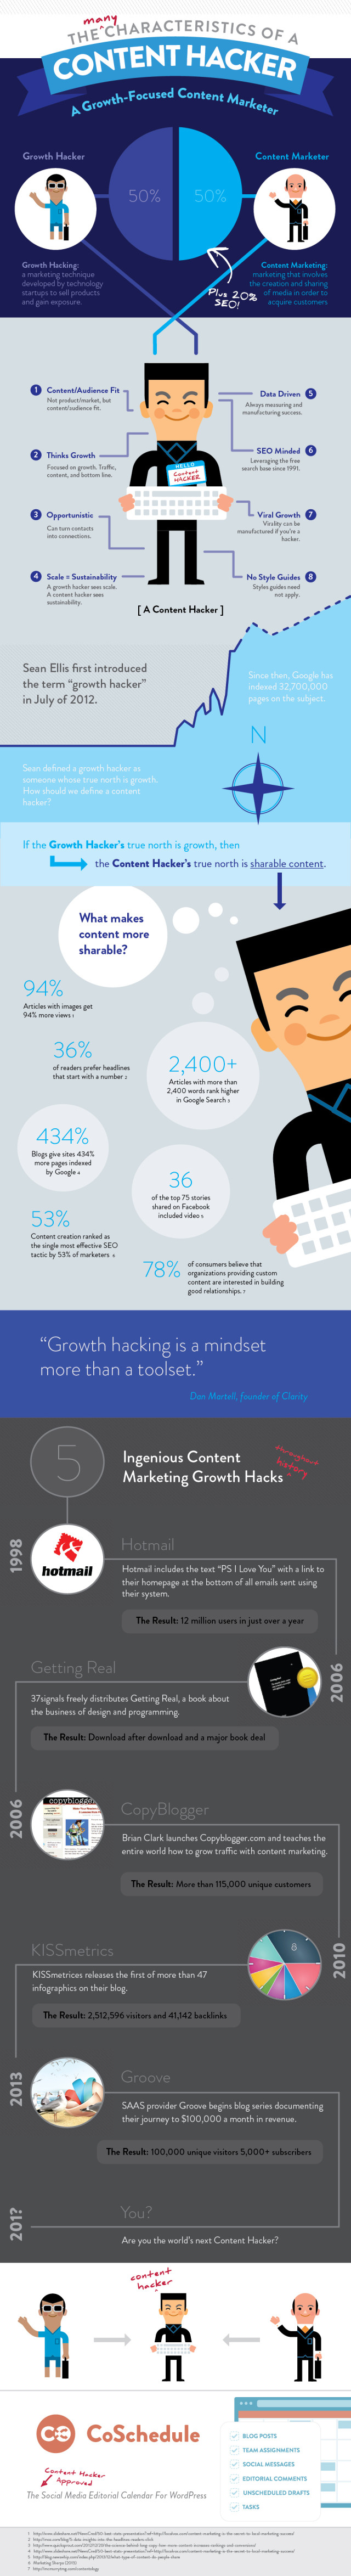 content-growth-hacker-640x4694